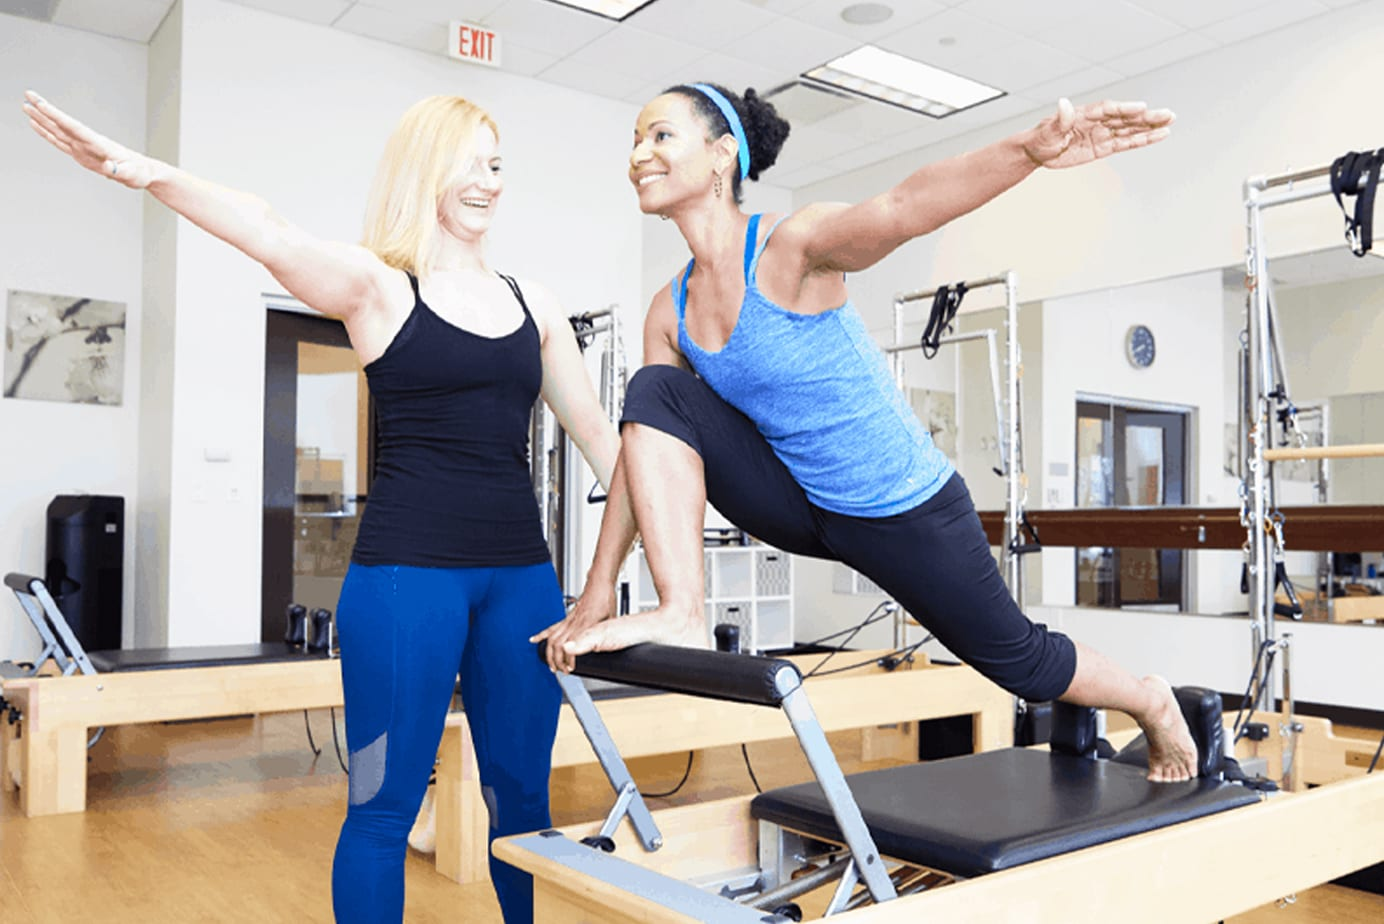 Private Pilates - RWJ RAHWAY FITNESS & WELLNESS